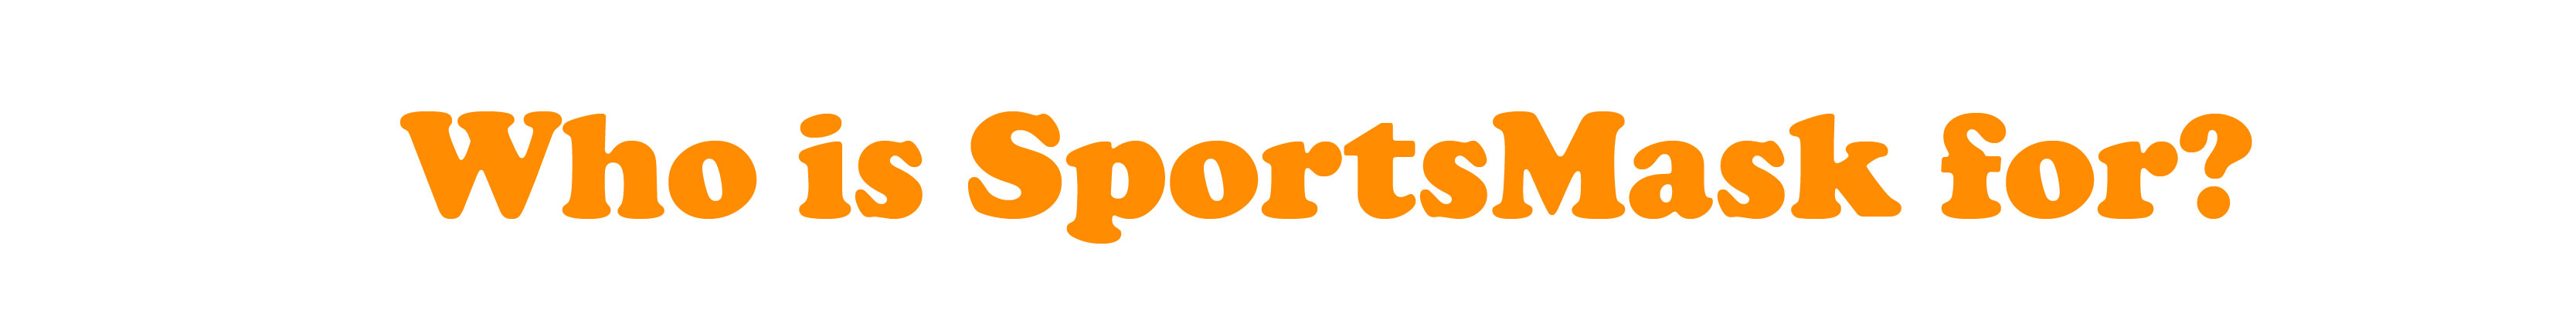 Titles_Who is SportsMask for-